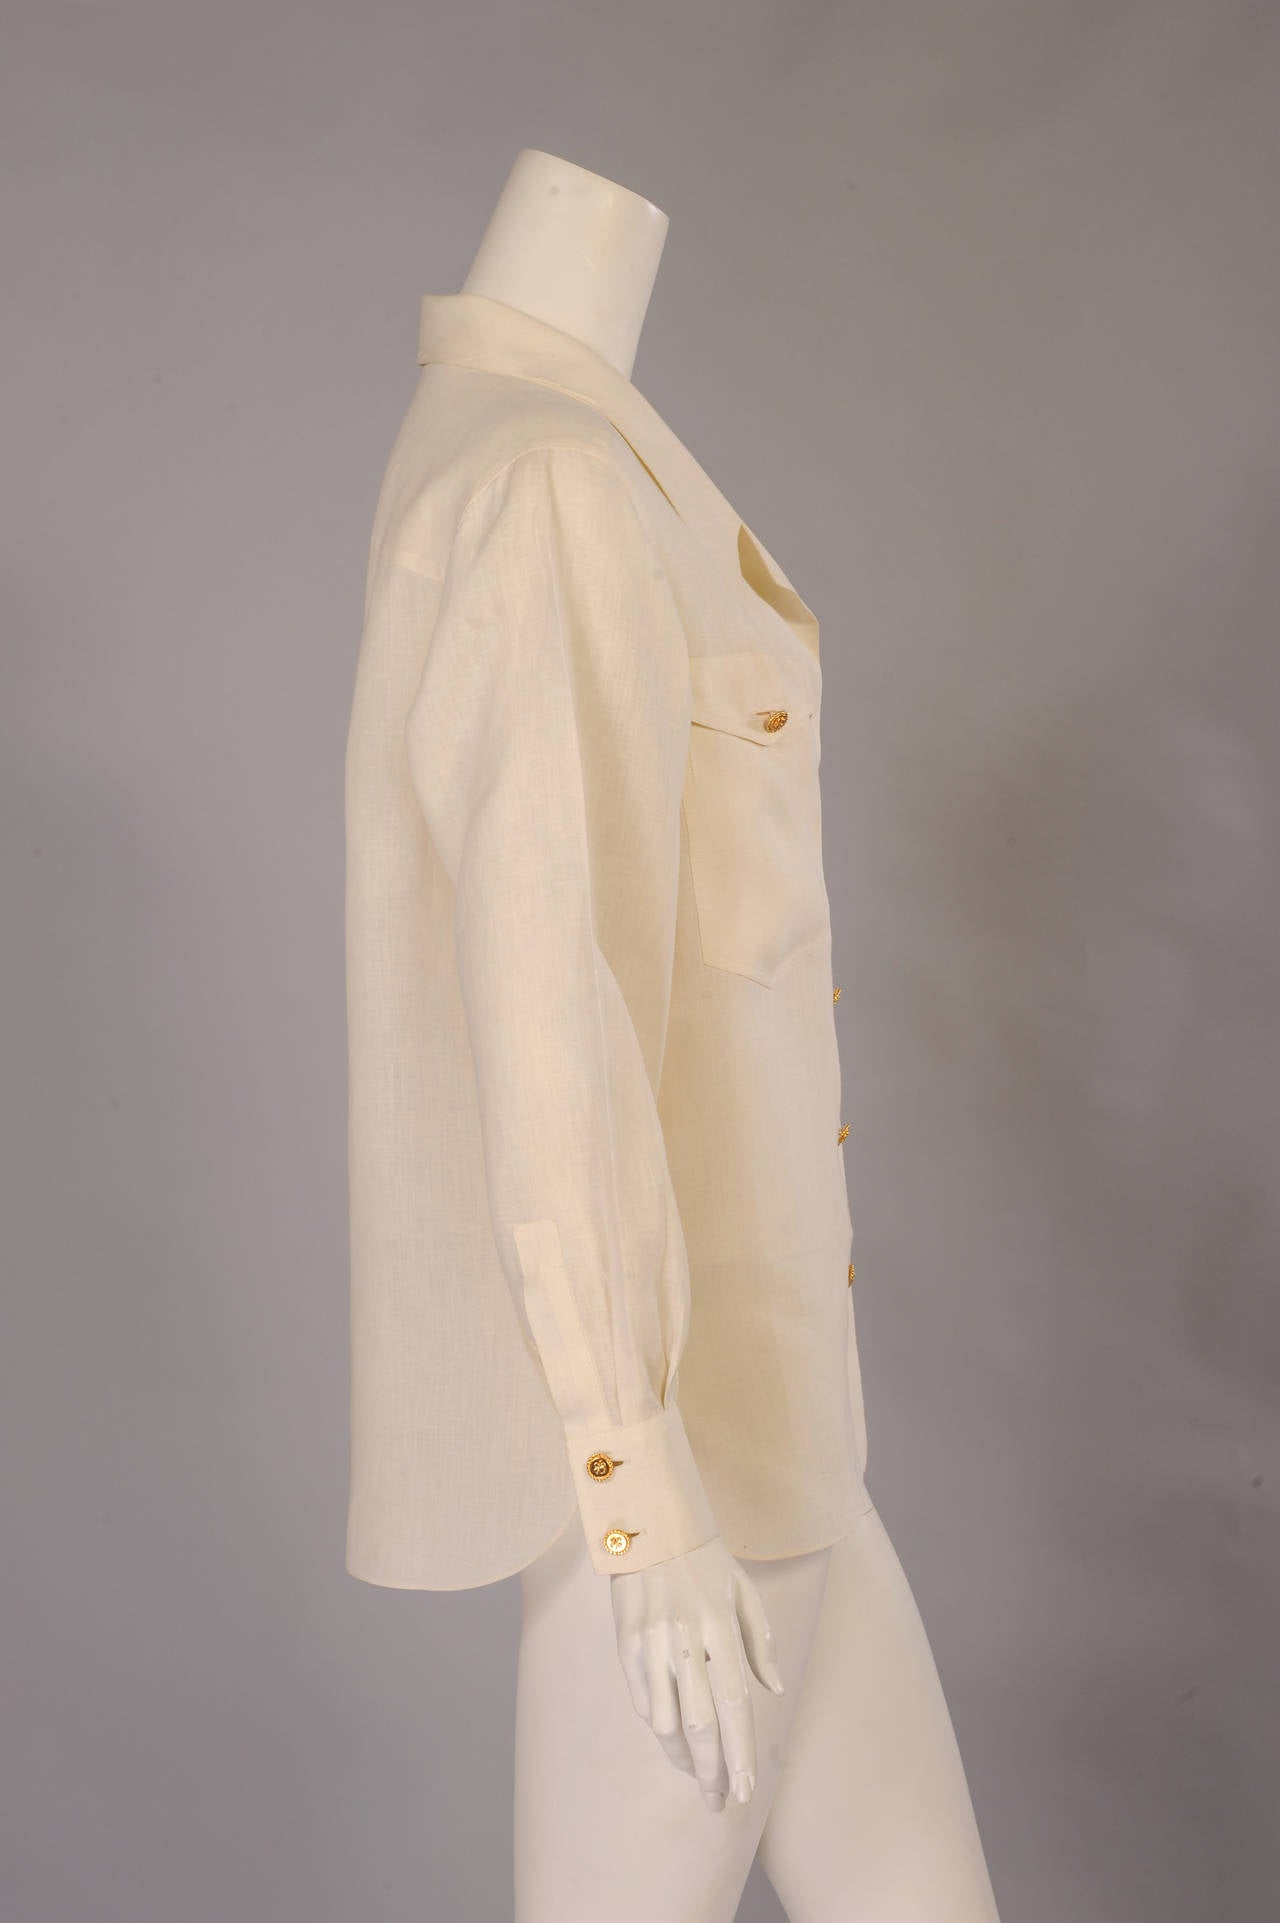 A classic blouse in cream linen from Chanel has two breast pockets and Chanel buttons. The extra button is sewn inside, and the blouse appears unworn.